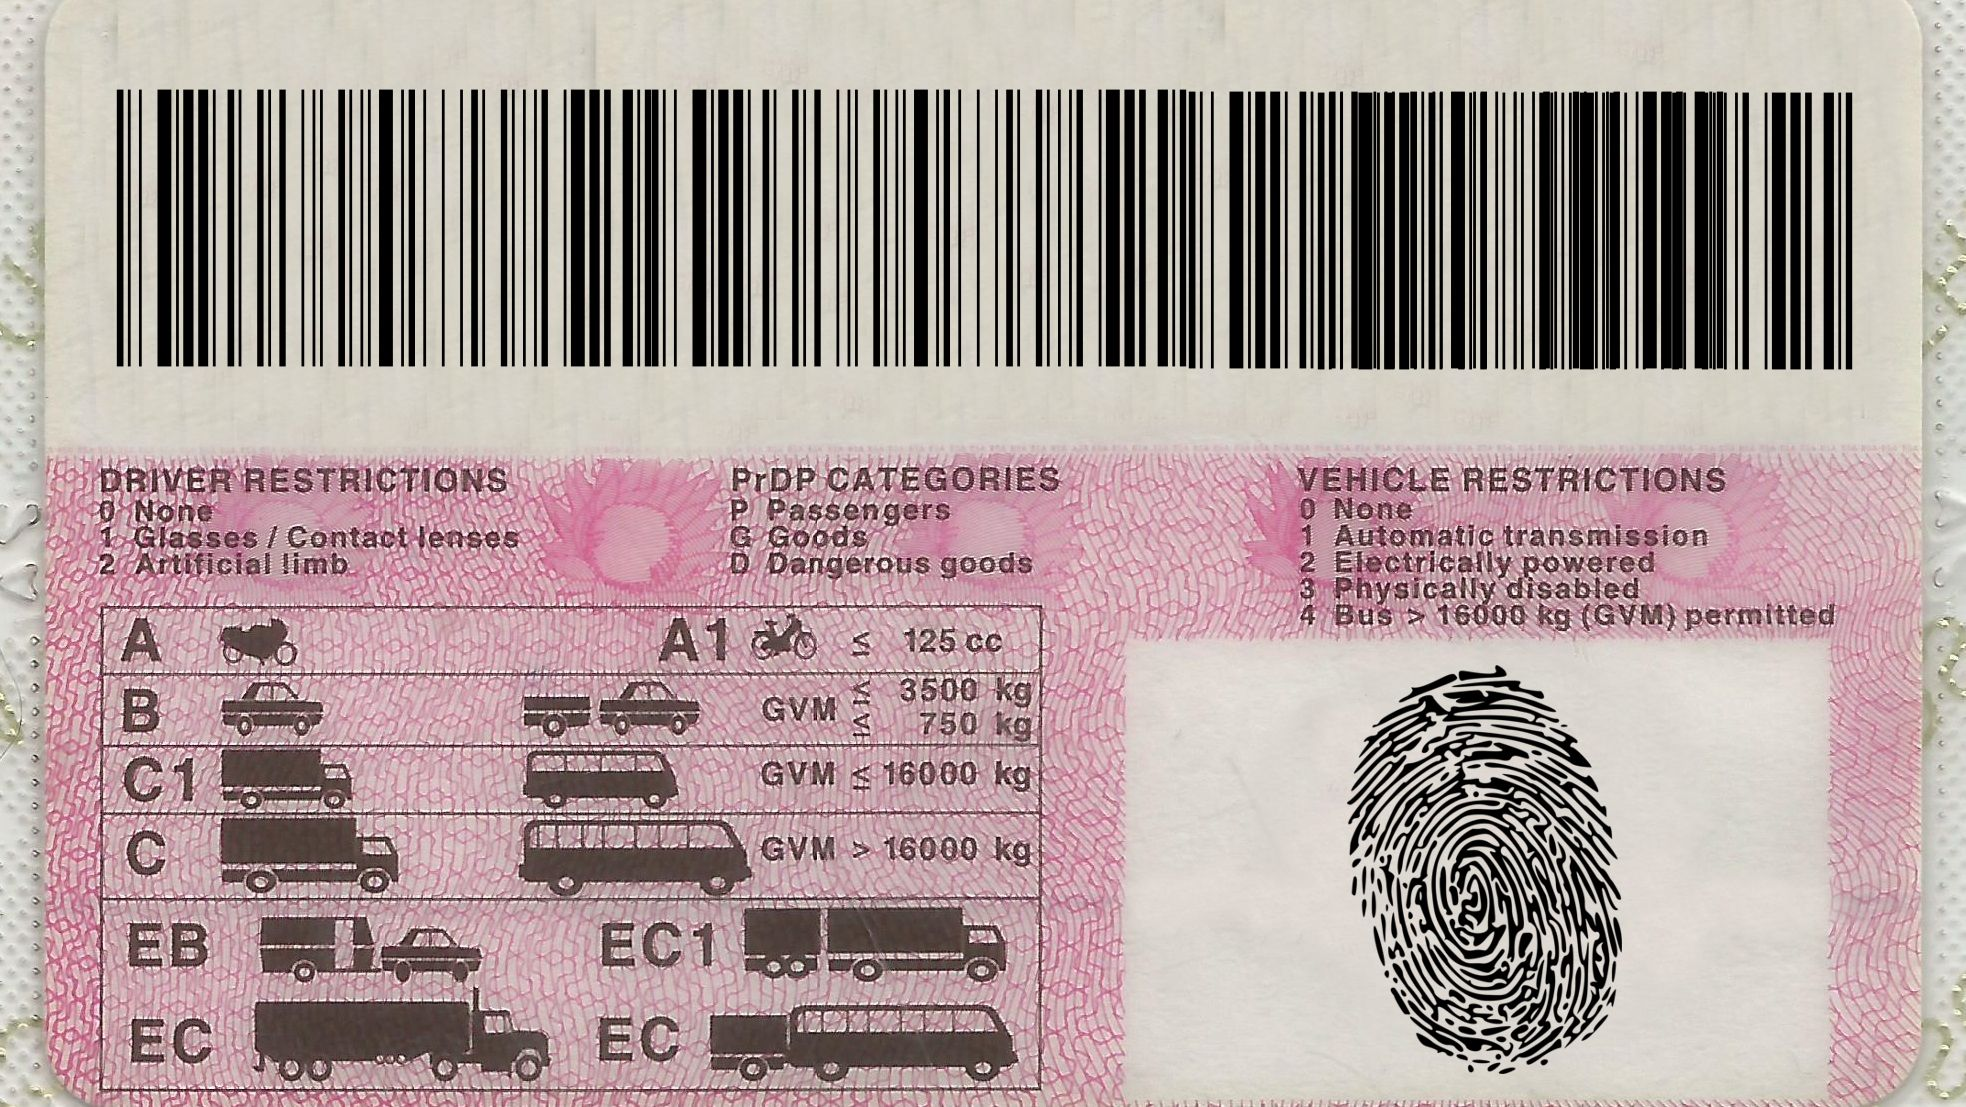 3d7c0c29152dd46b779db22fd5d1fcfb - How To Get International Drivers License In South Africa